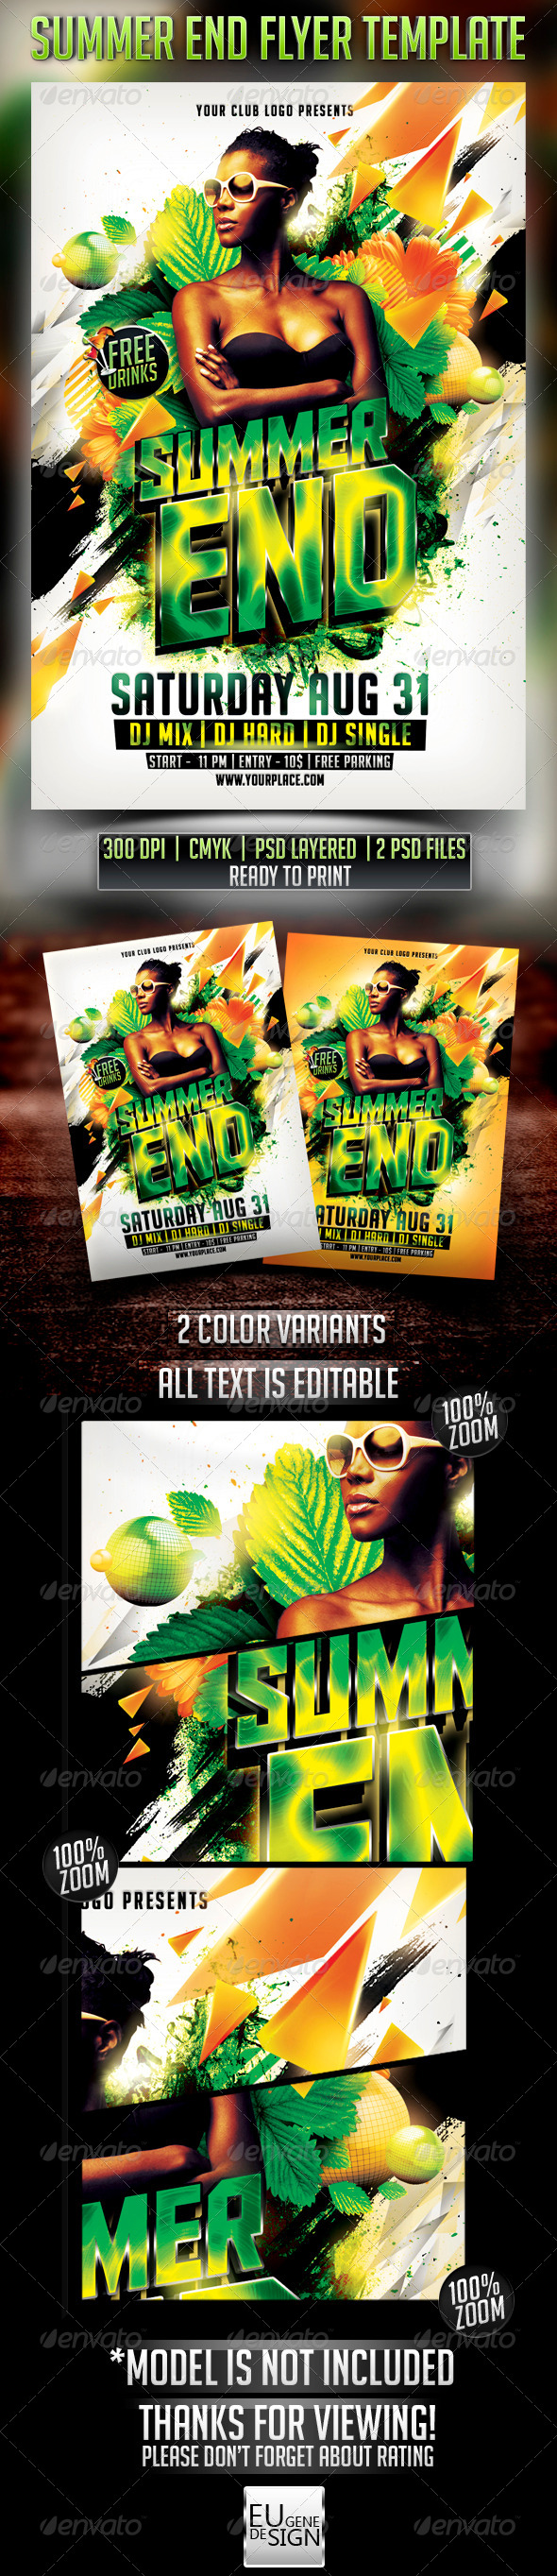 Summer End Flyer Template - Clubs & Parties Events